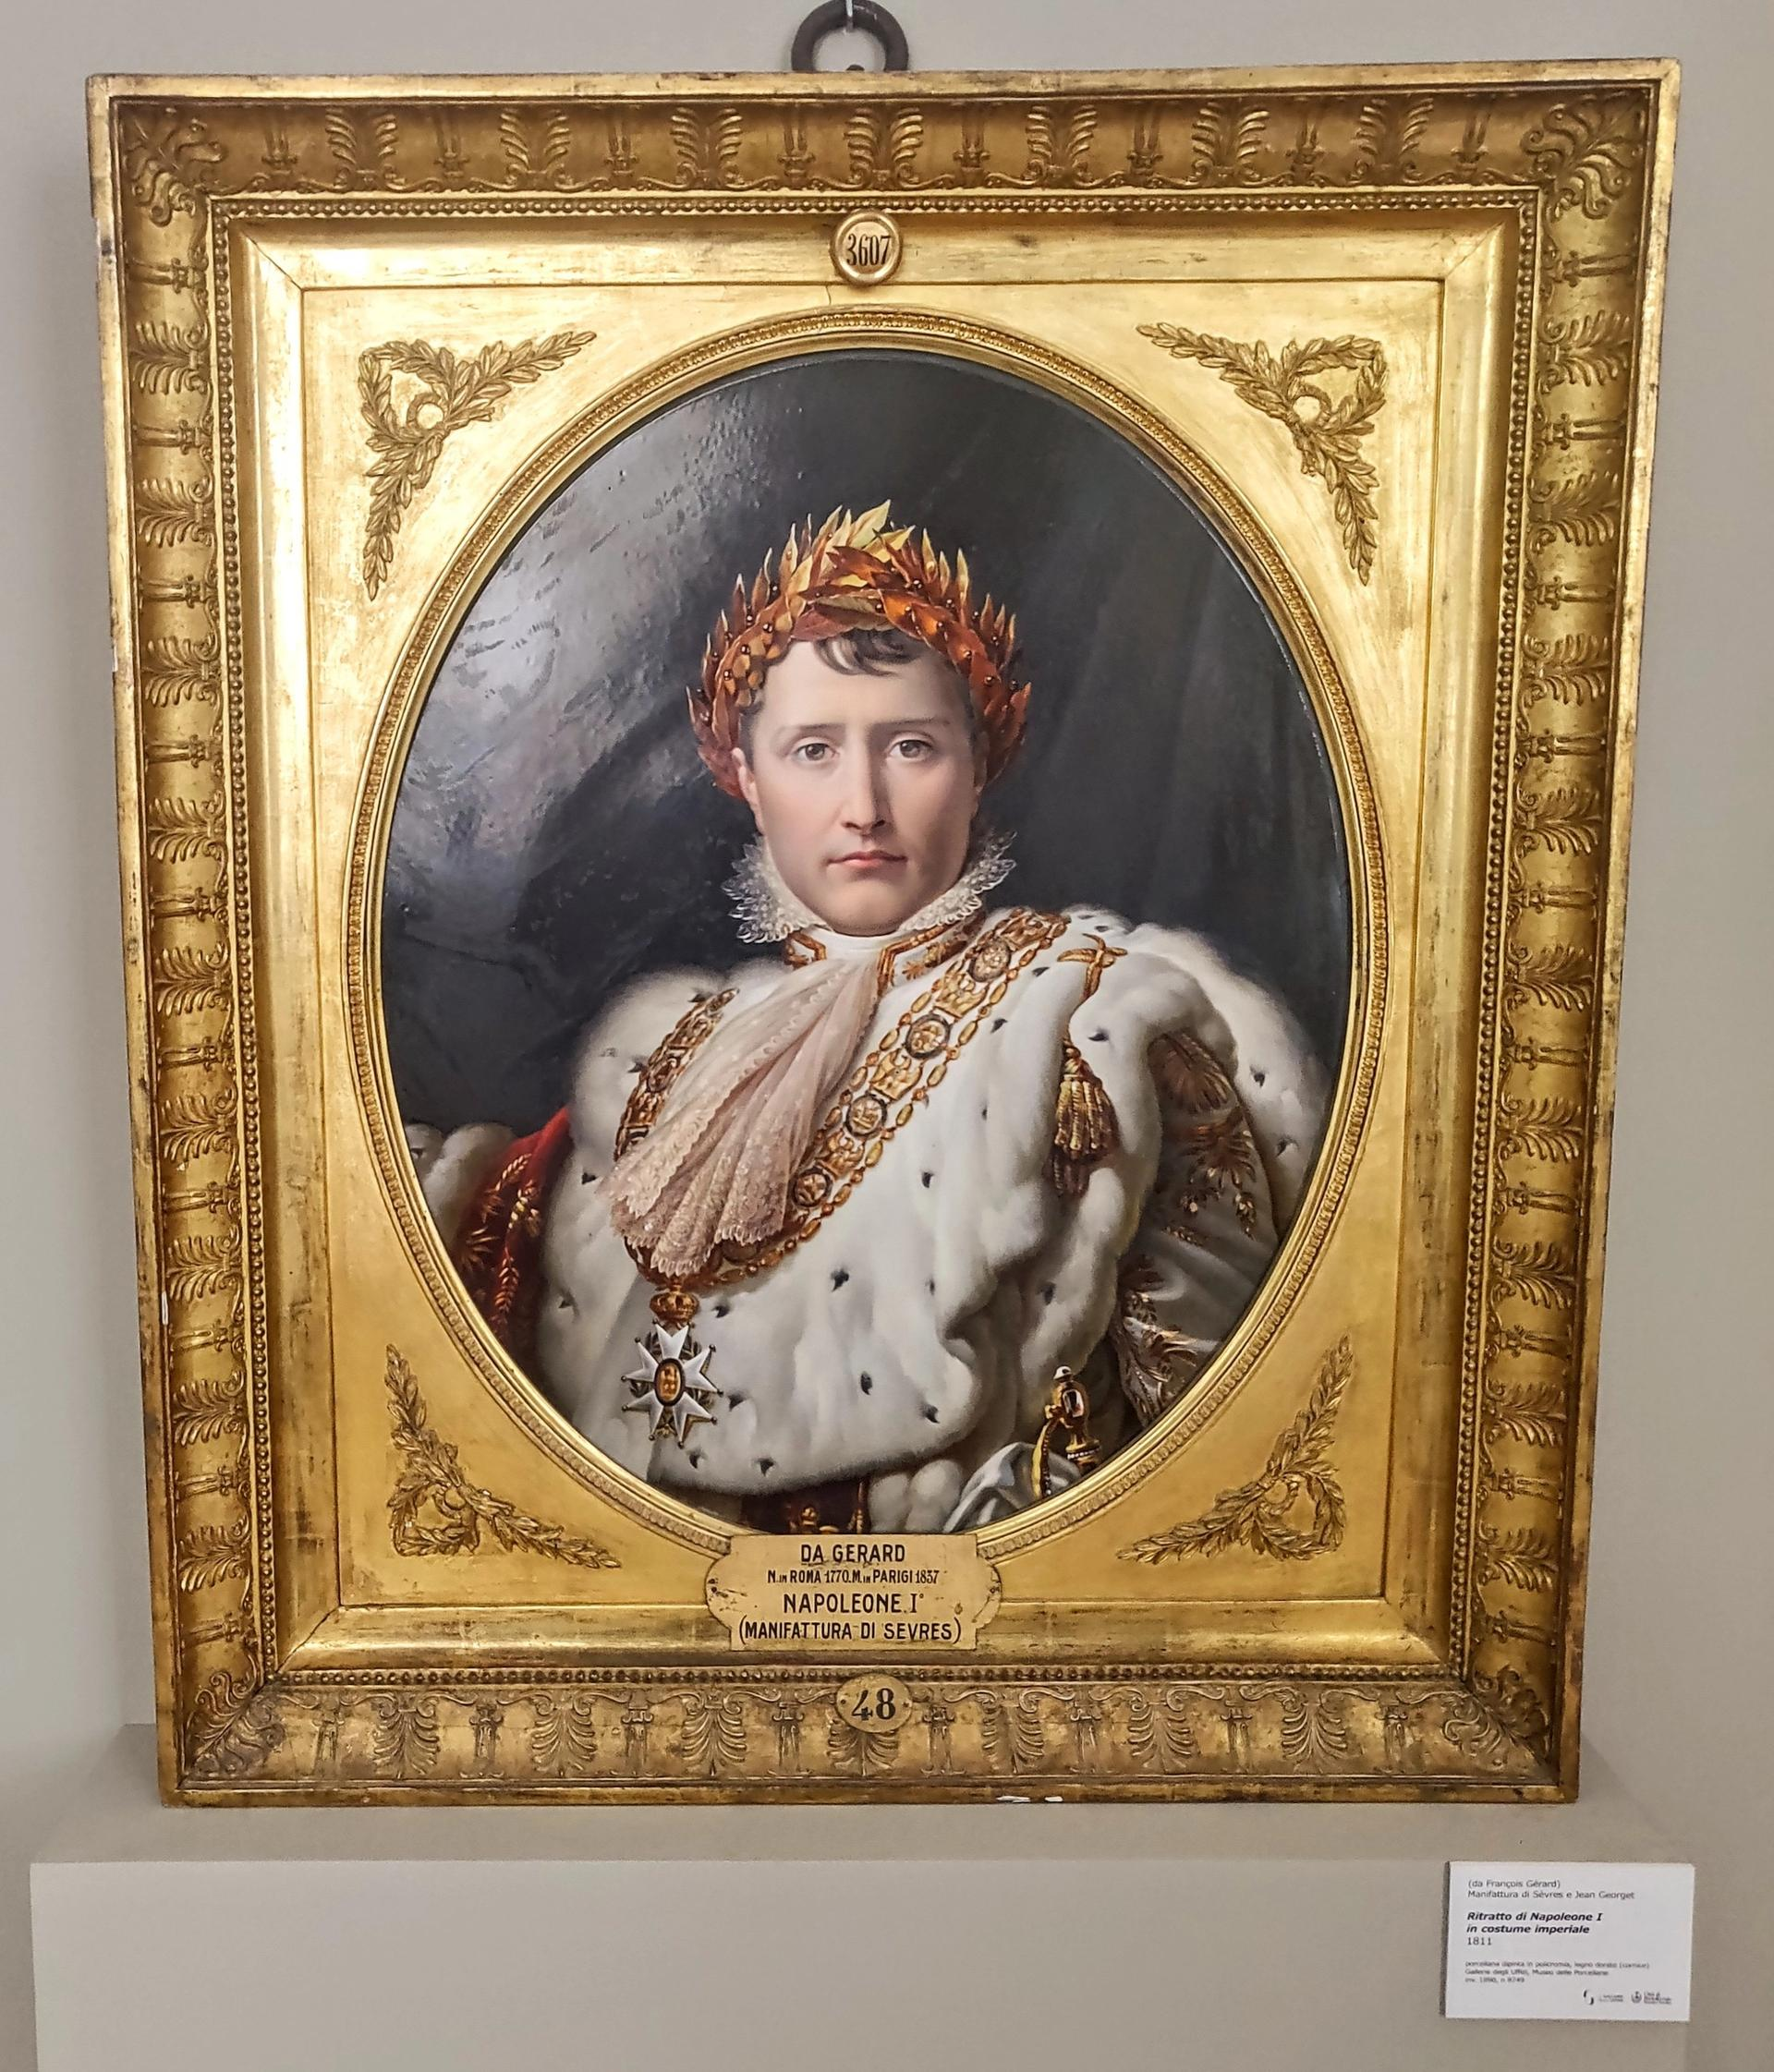 A portrait of Napoleon I painted by Jean Georget on a large porcelain tile, which created at the Sèvres manufactory in 1810